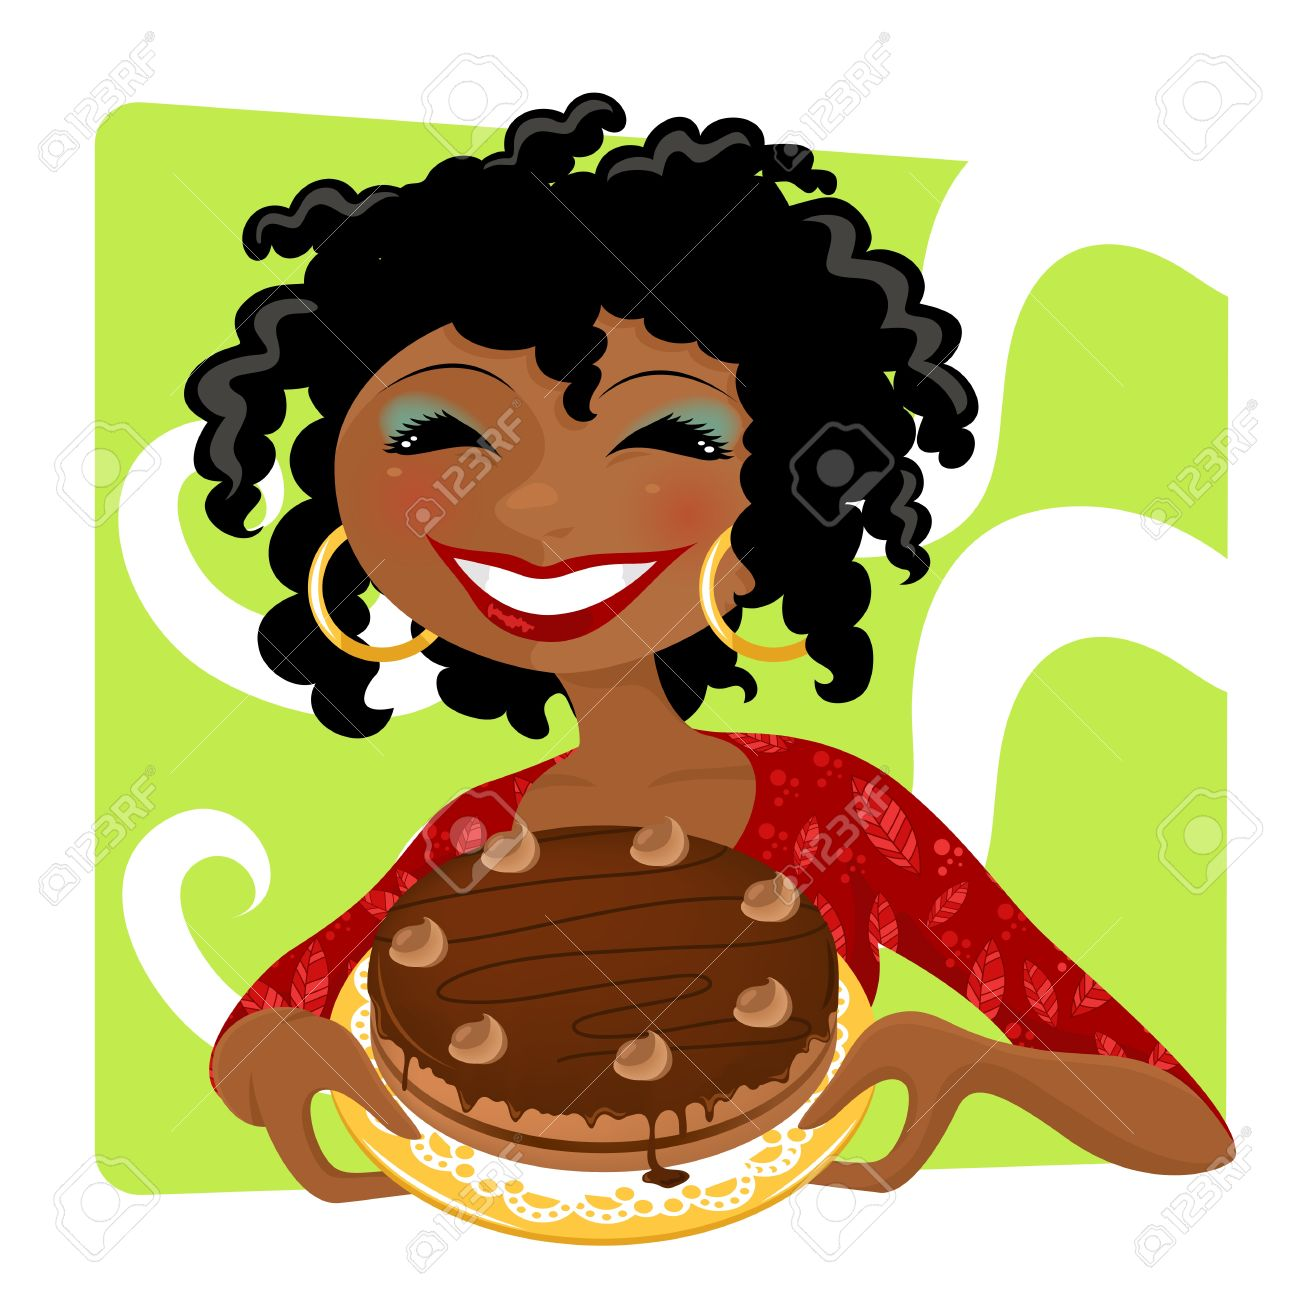 Free Black Women Cliparts, Download Free Clip Art, Free Clip.